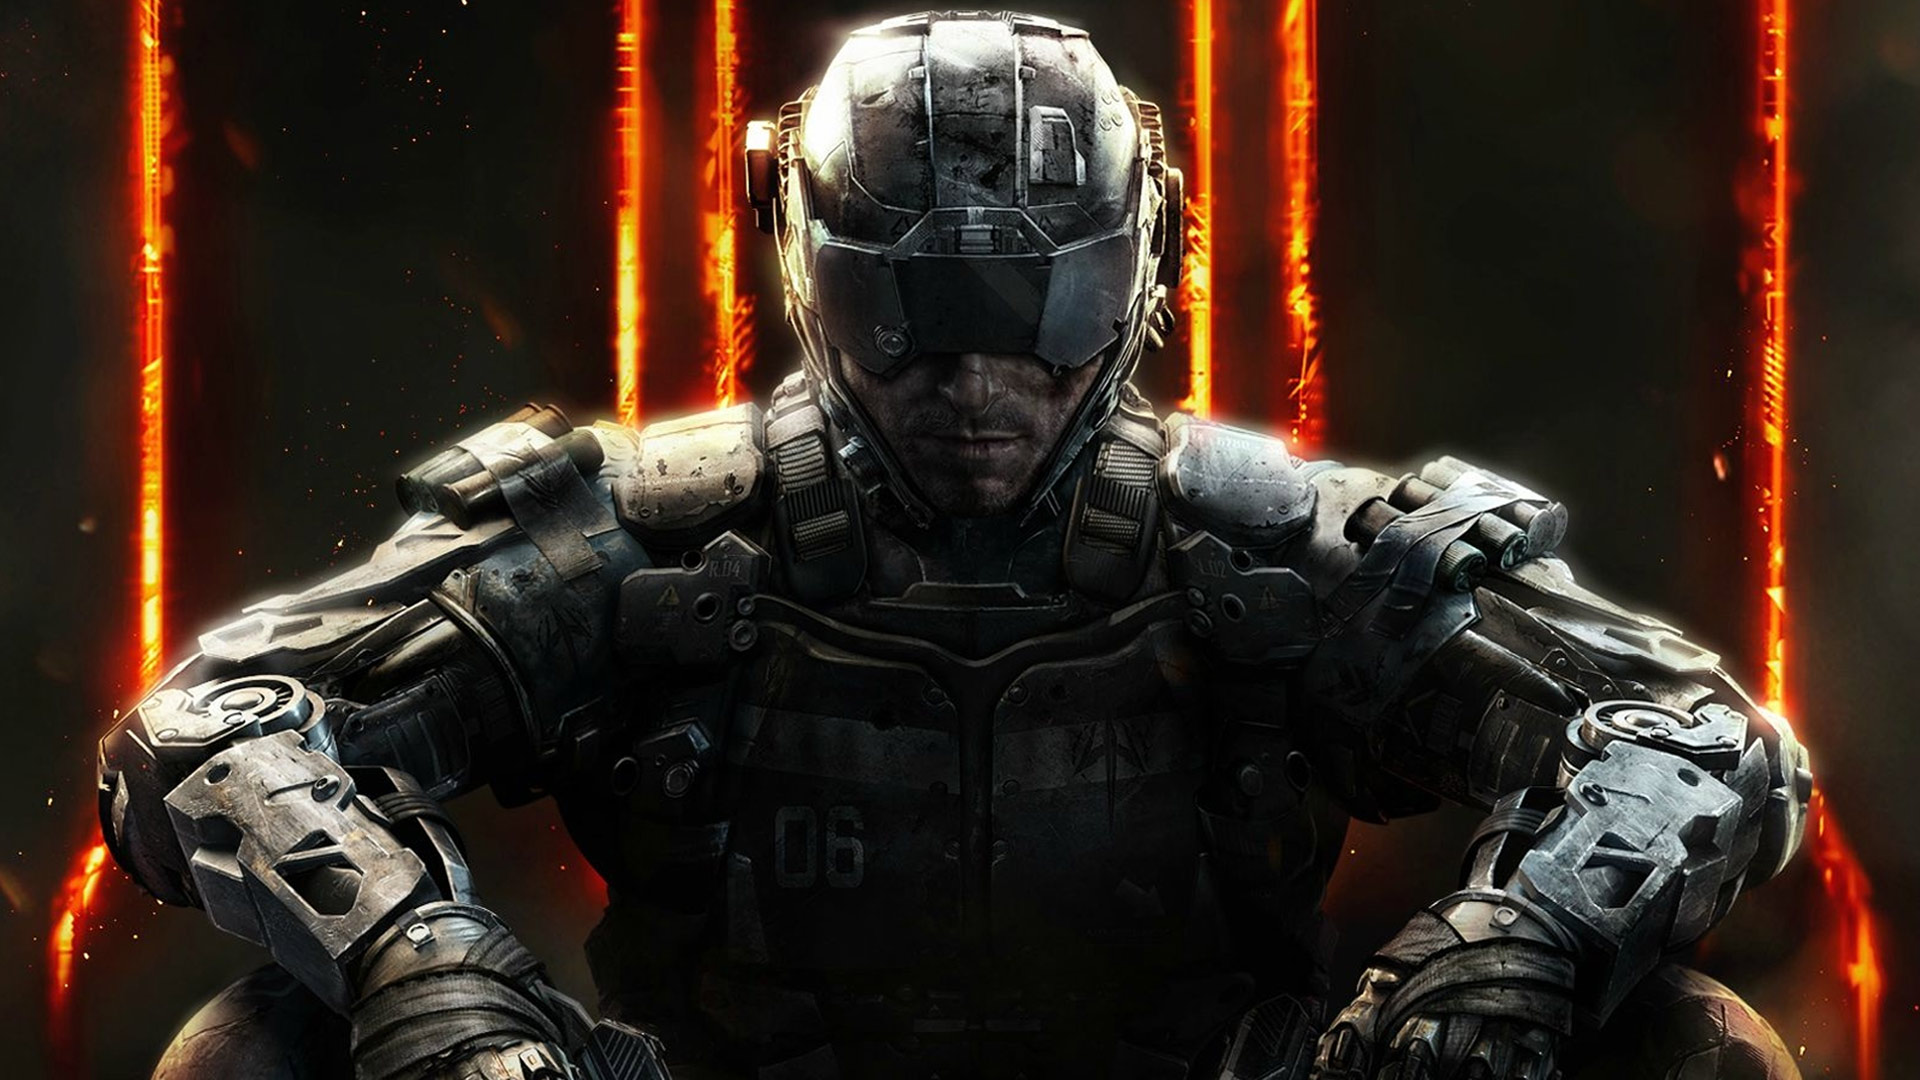 other wallpapers of call of duty black ops 3 call of duty black ops 3 1920x1080